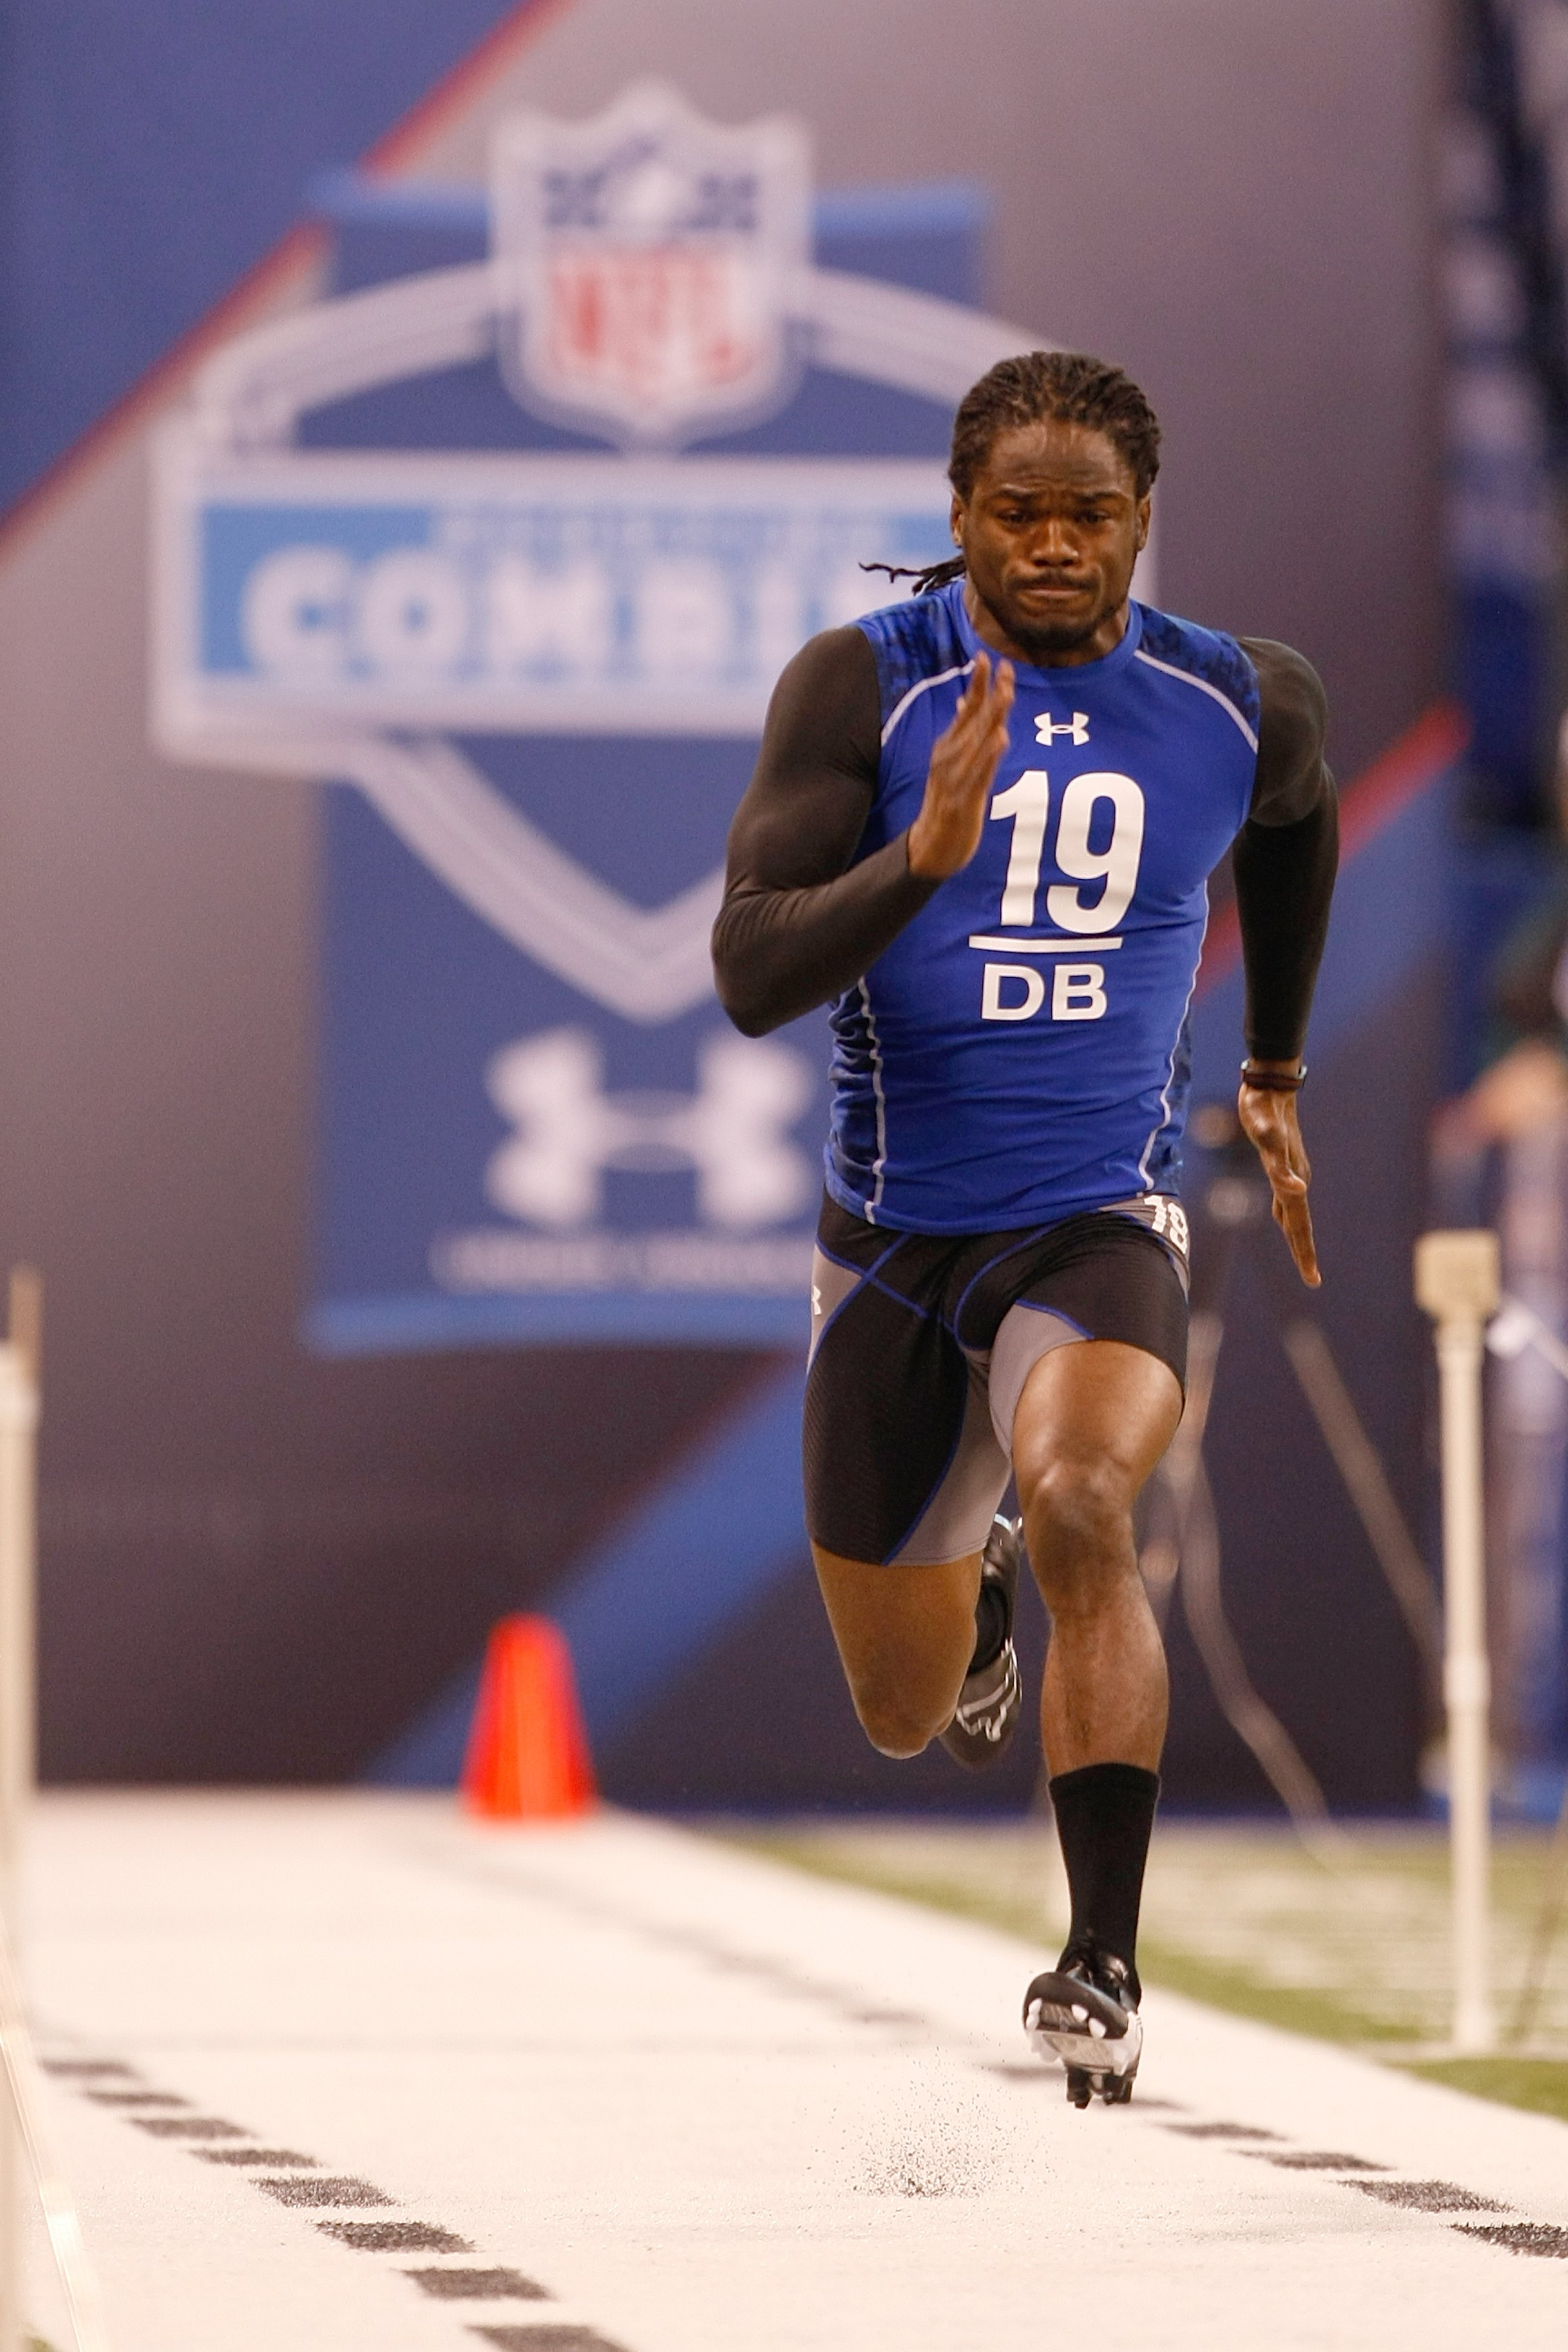 INDIANAPOLIS, IN - MARCH 2: Defensive back Marshay Green of Mississippi runs the 40 yard dash during the NFL Scouting Combine presented by Under Armour at Lucas Oil Stadium on March 2, 2010 in Indianapolis, Indiana. (Photo by Scott Boehm/Getty Images)